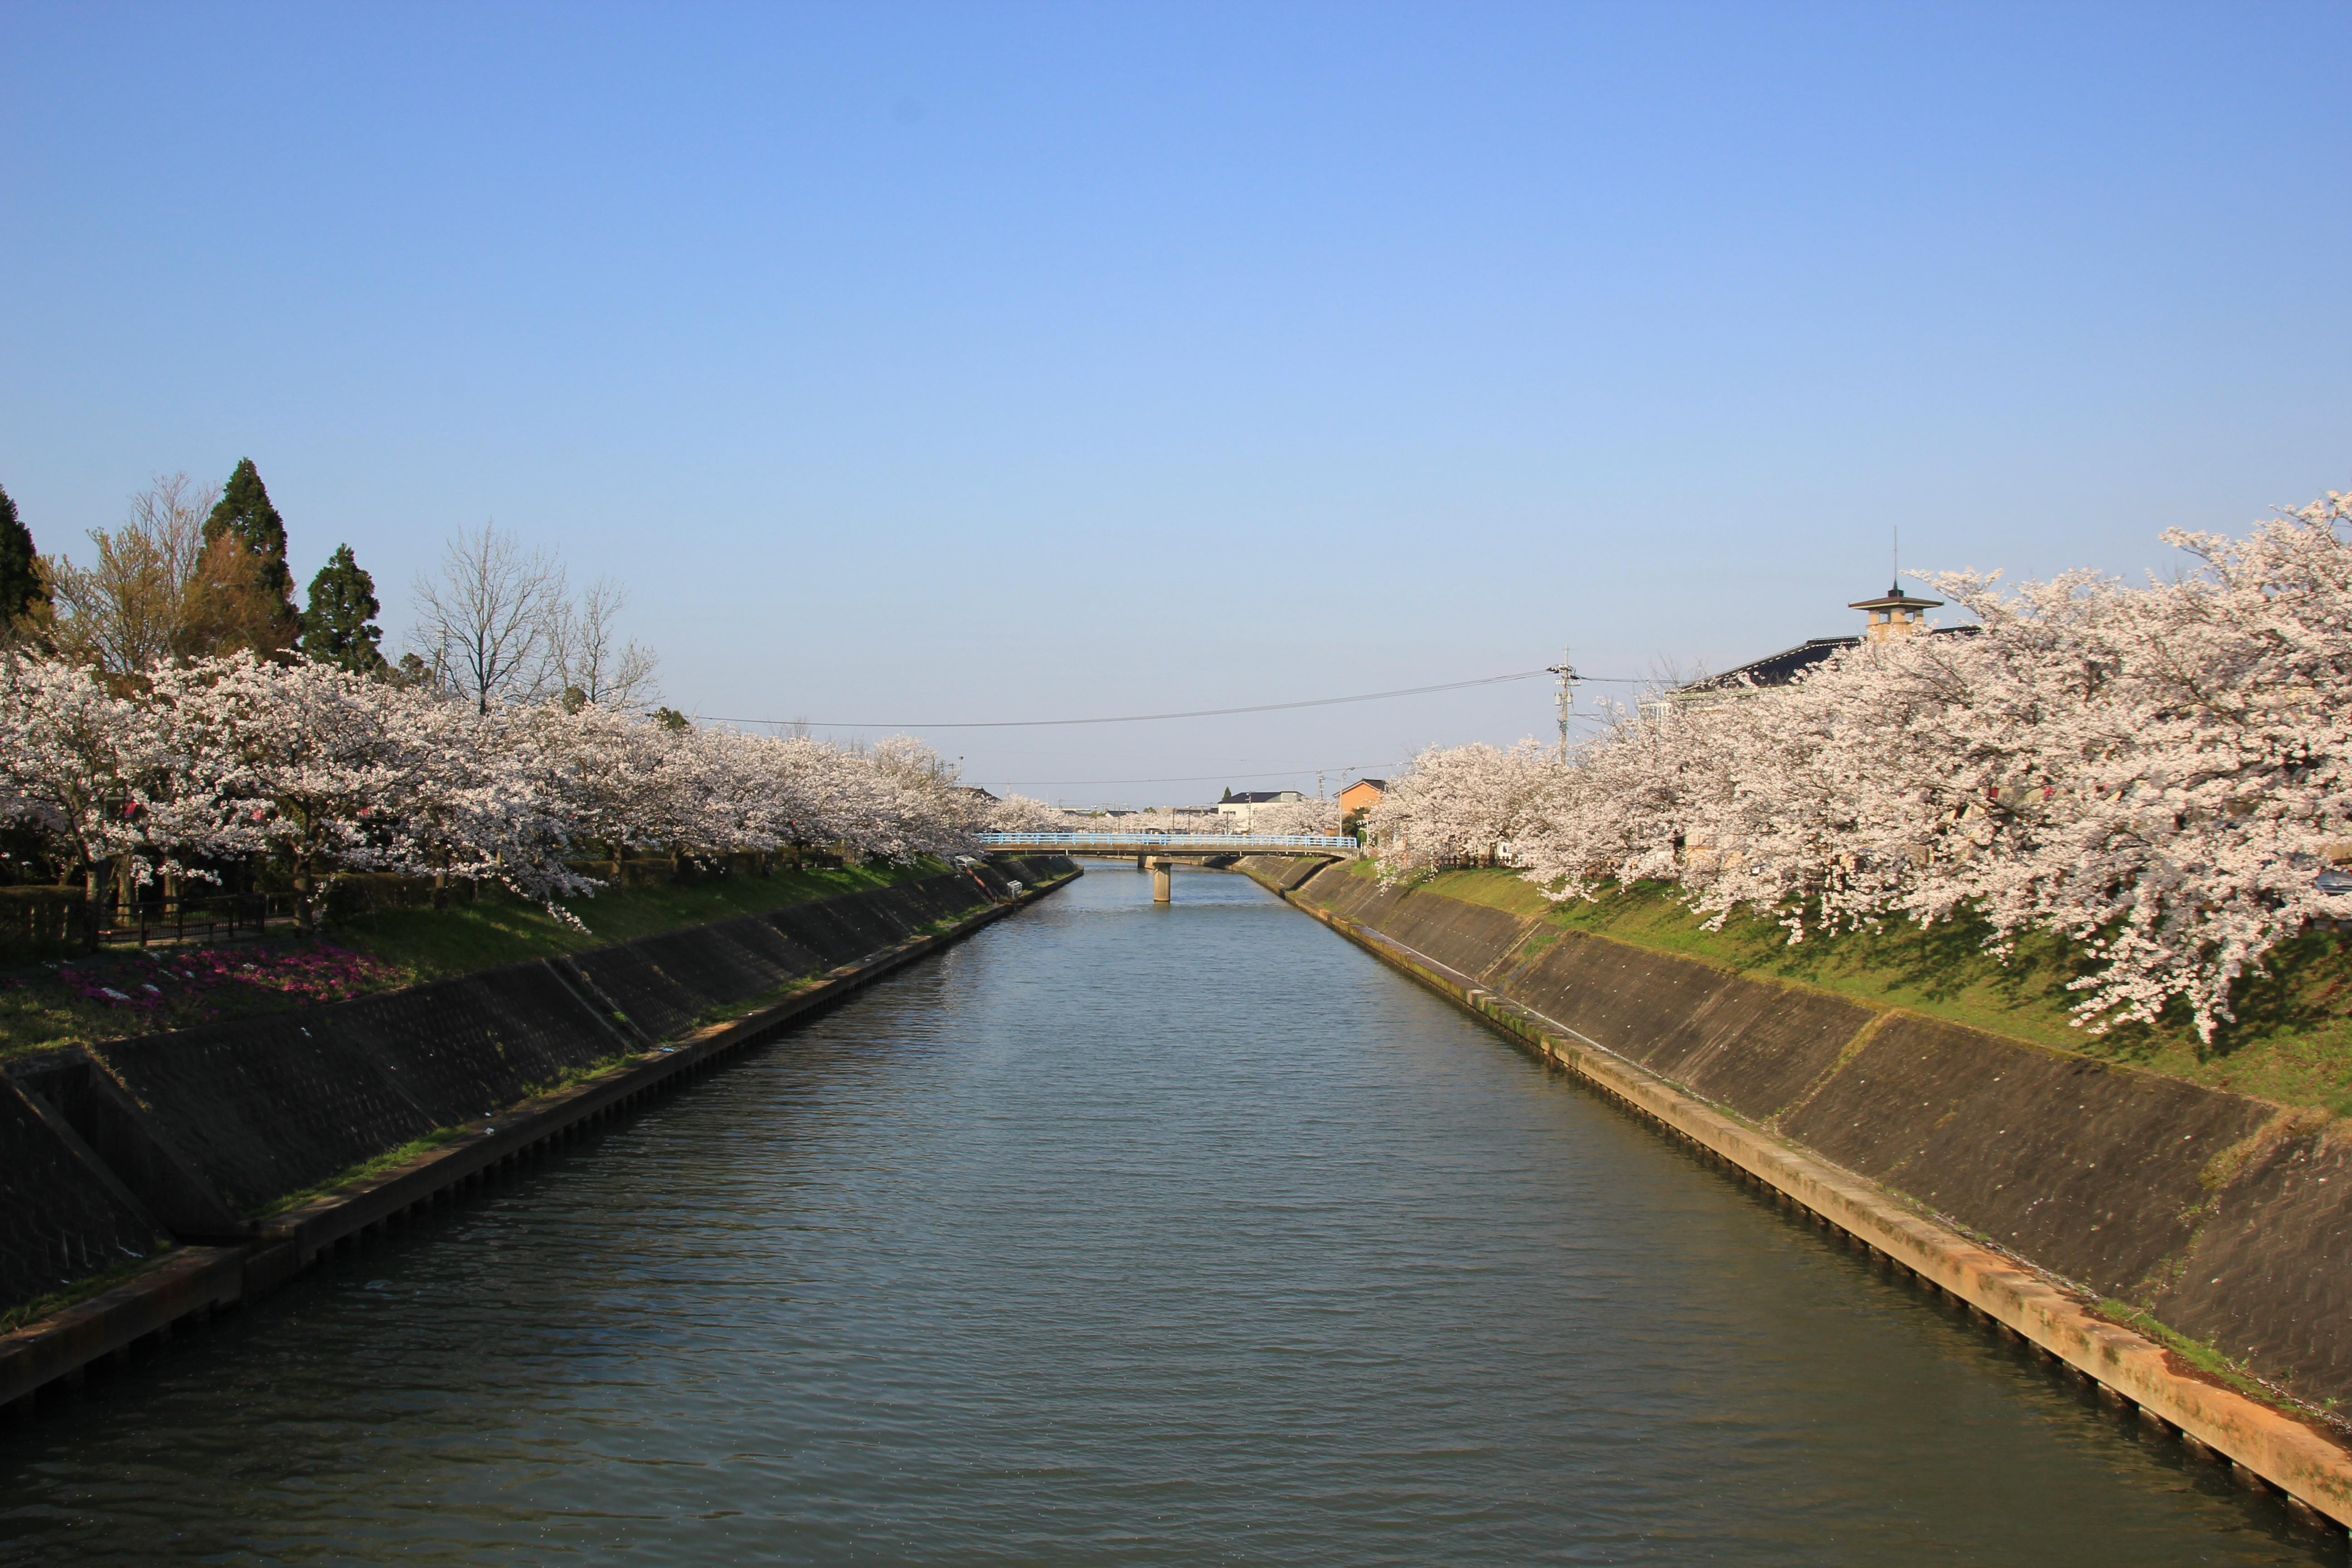 【2】Recommended spots in Hietsuno for beautiful cherry blossoms in spring